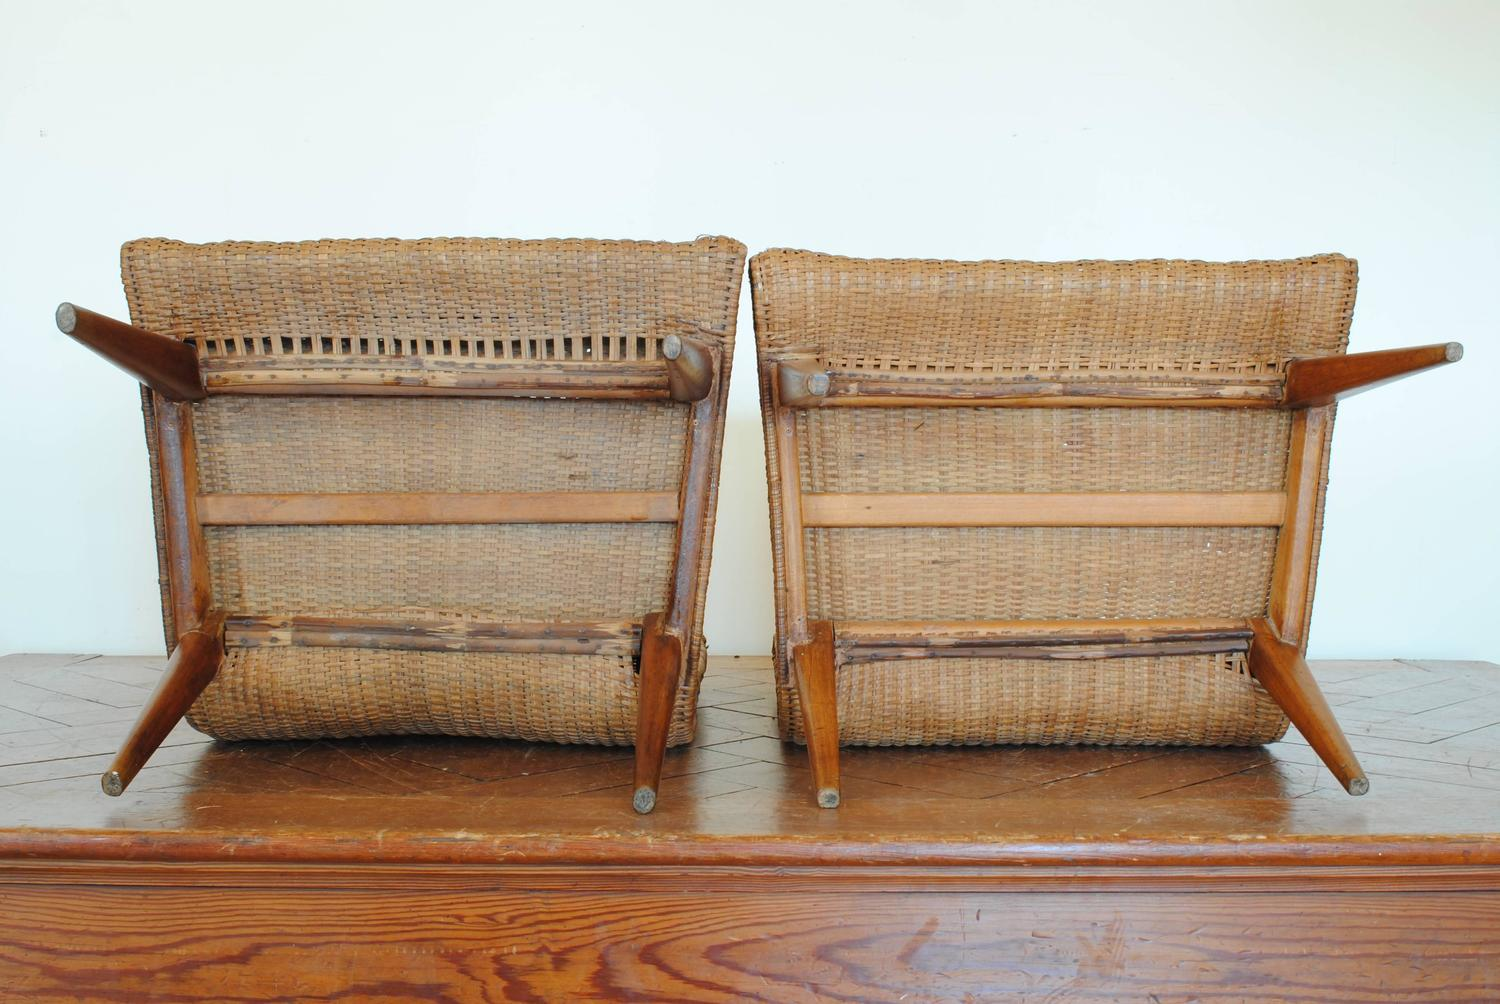 Superb img of Pair of French Wooden and Rattan Upholstered Chairs at 1stdibs with #794528 color and 1500x1004 pixels